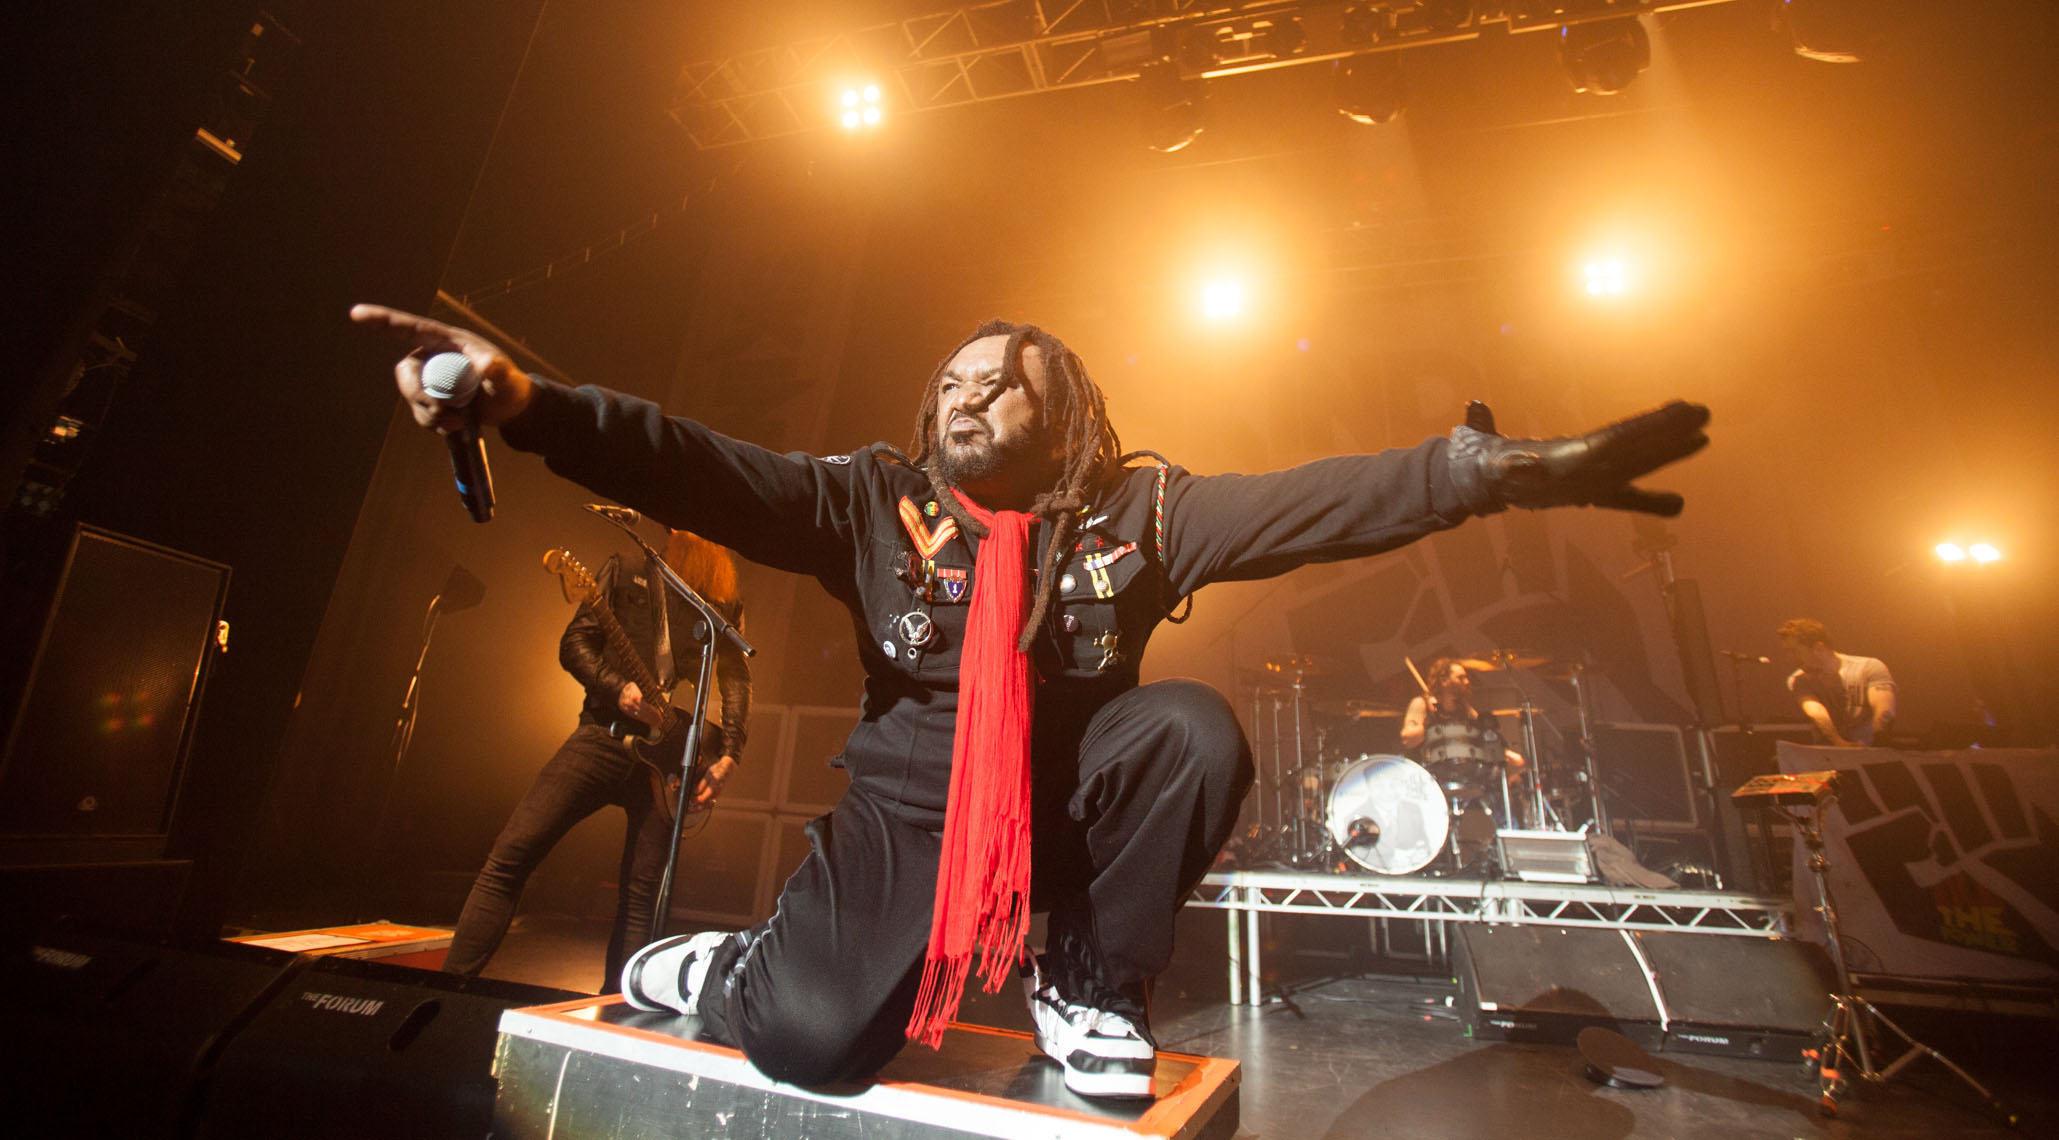 Skindred_London-9399-DUP.jpg